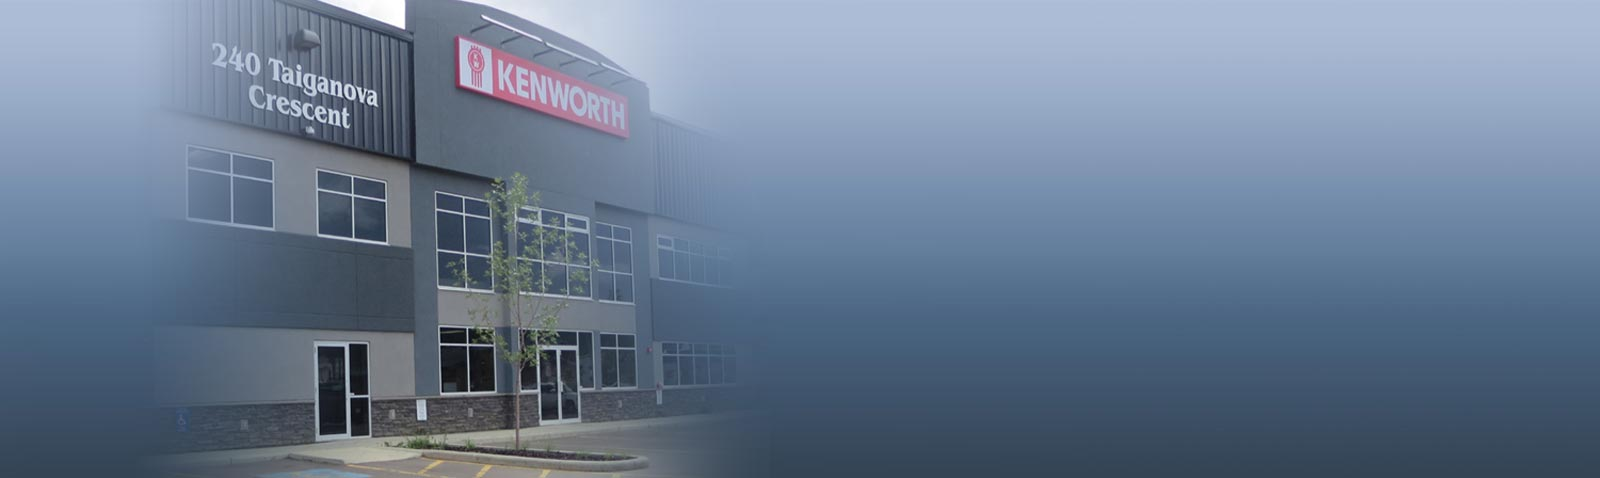 Kenworth Fort McMurray Location